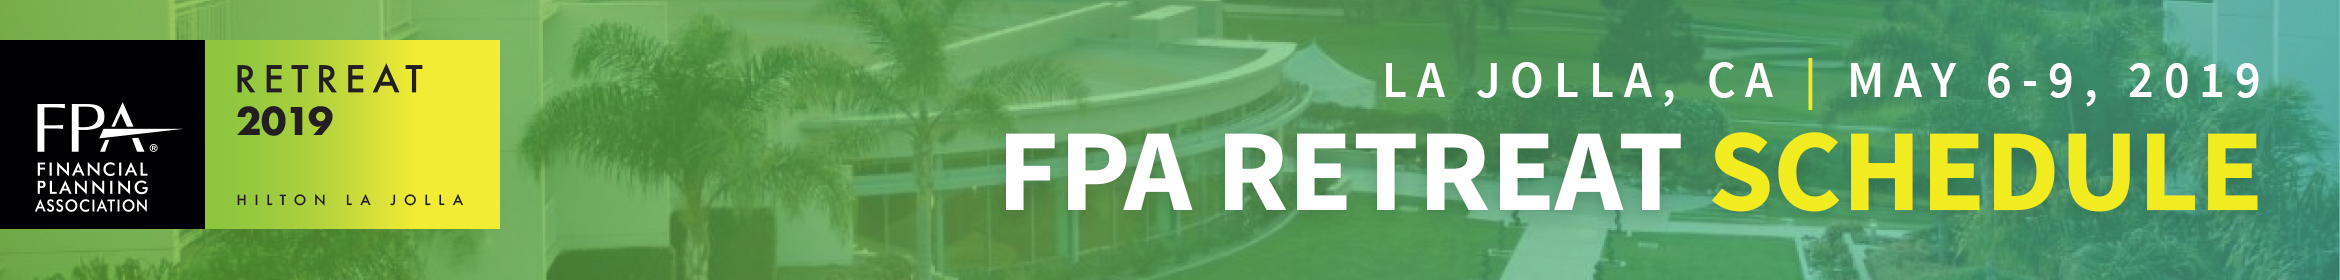 FPA Retreat 2019 Main banner